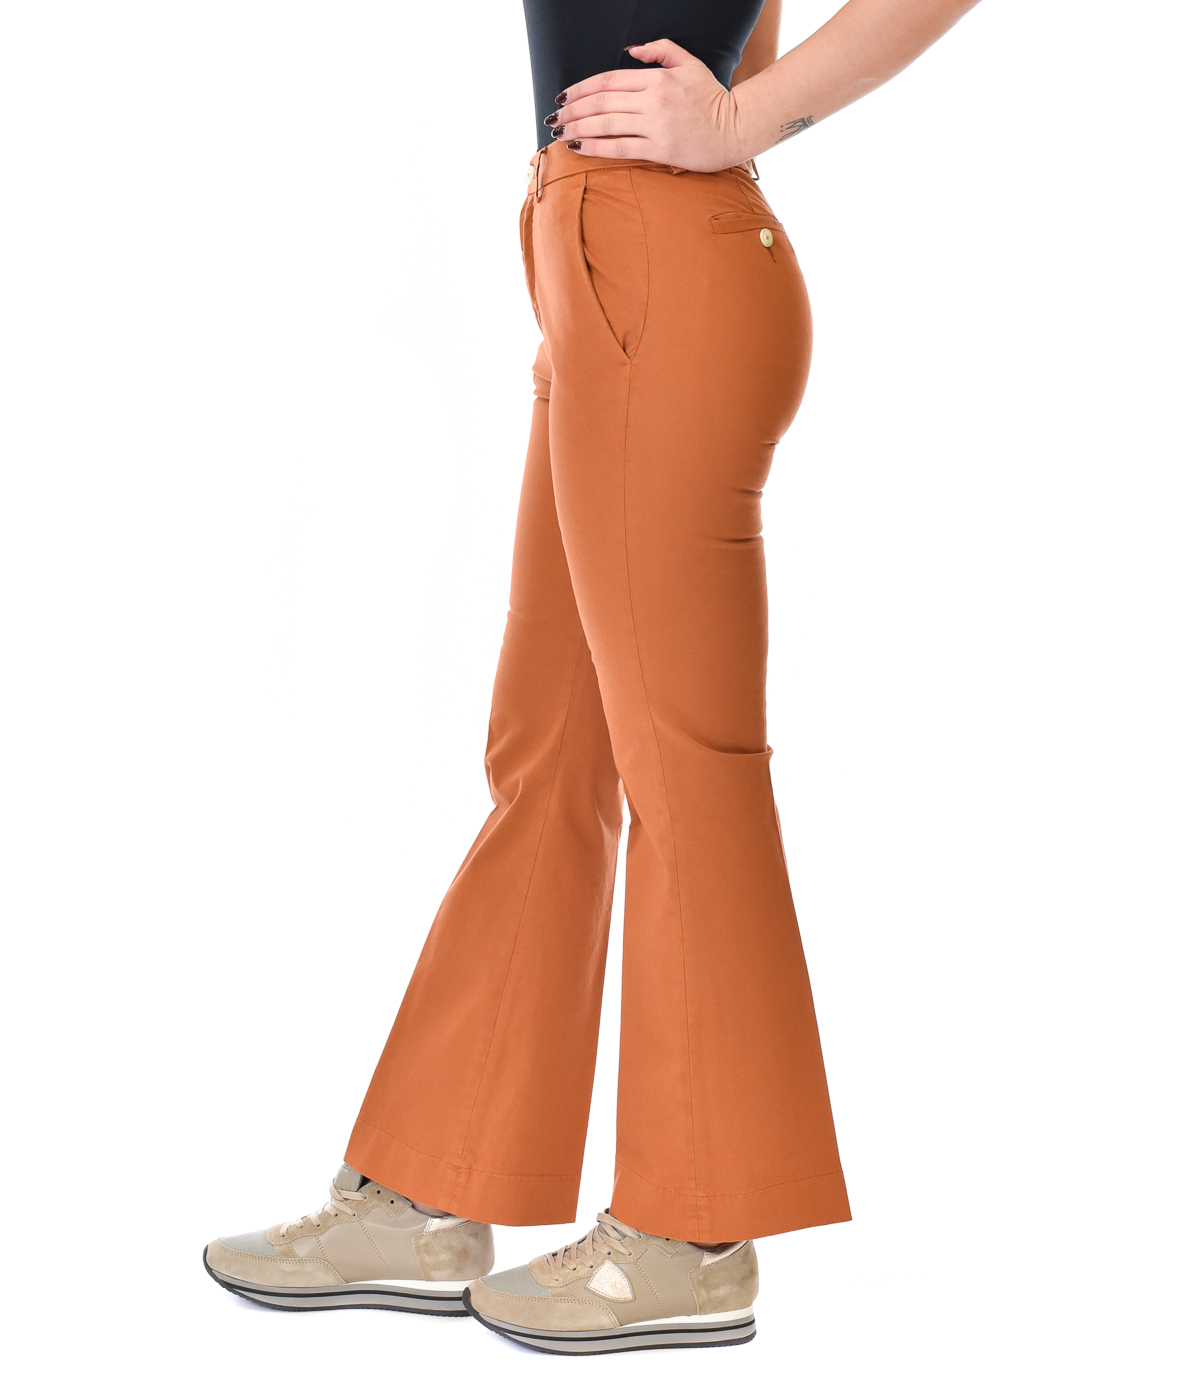 (+) PEOPLE PANTALONE DONNA MATTONE SKINNY FIT A ZAMPA